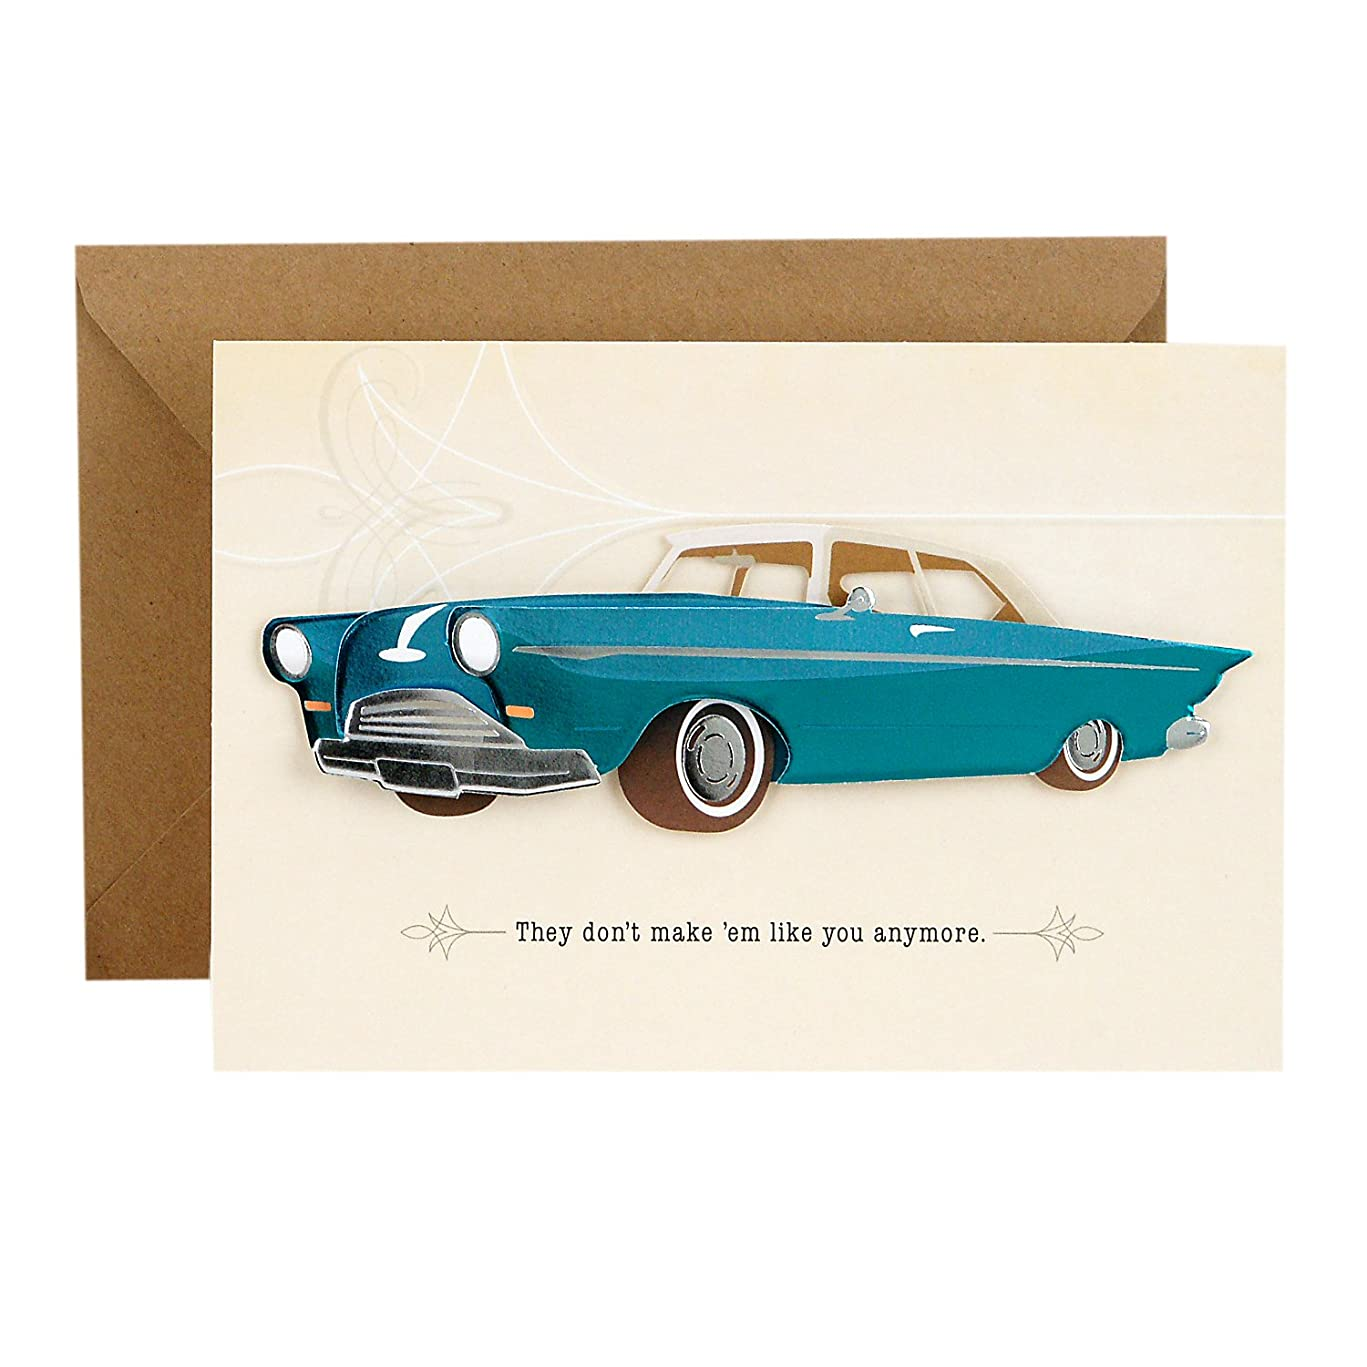 Hallmark Signature Father's Day Card (Vintage Classic Car, Don't Make 'Em Like You Anymore)